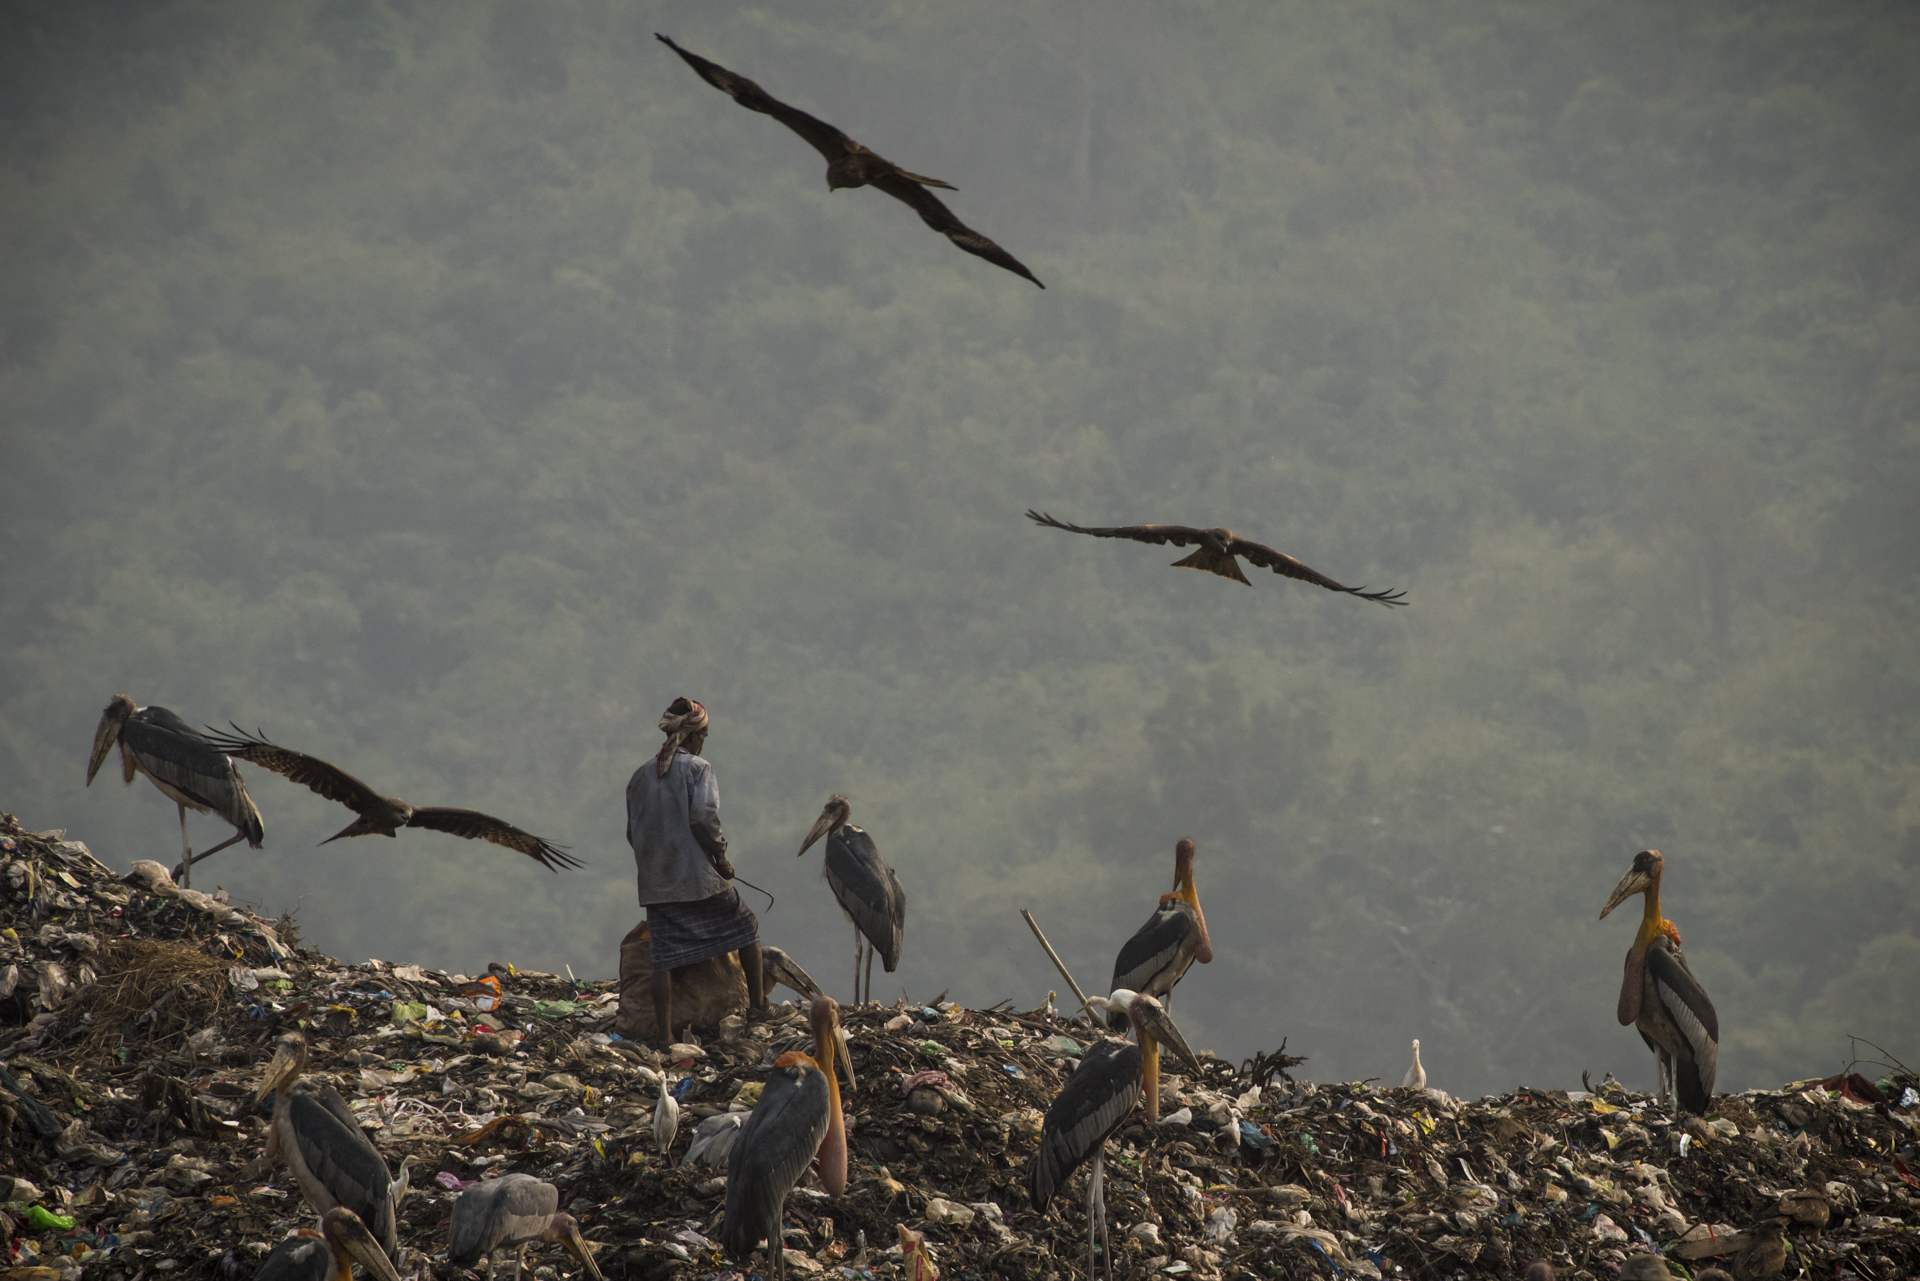 Humans, Greater Adjutant Storks and Black Kites at a garbage dump in Guwahati